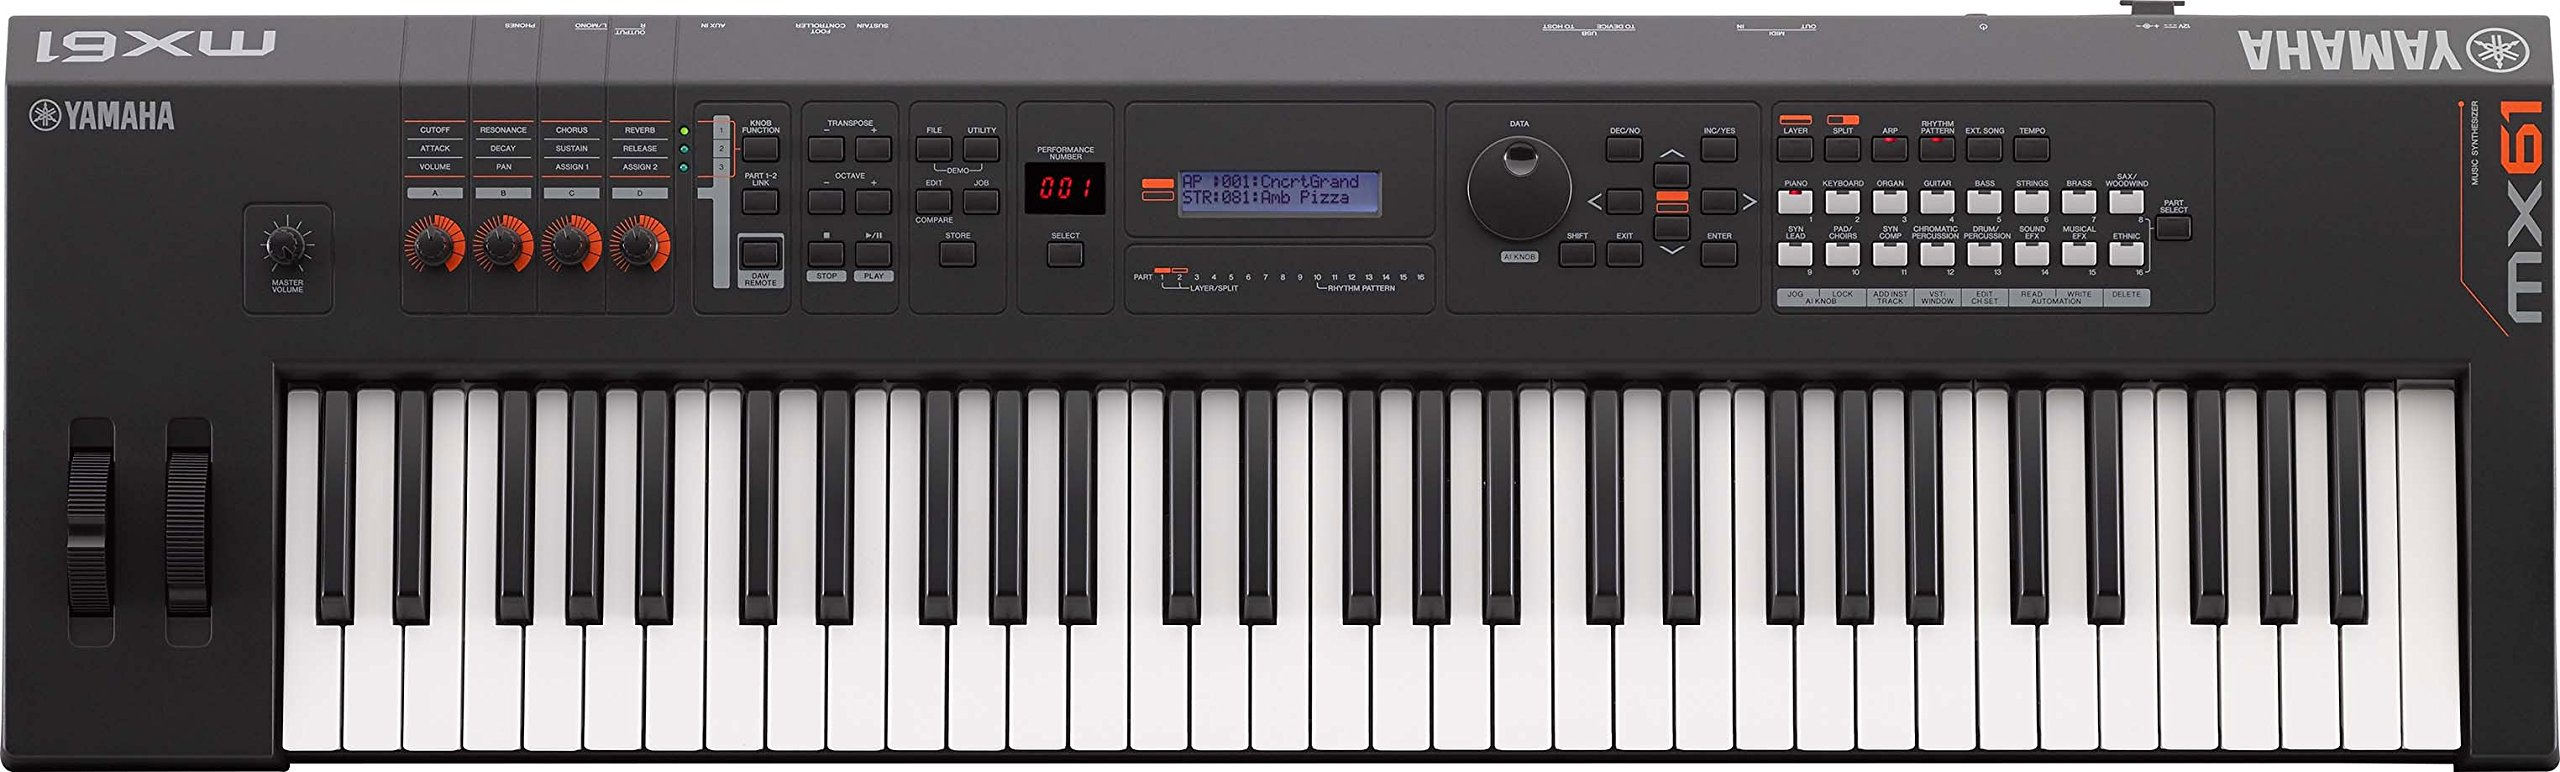 Yamaha MX61 Music Production Synthesizer